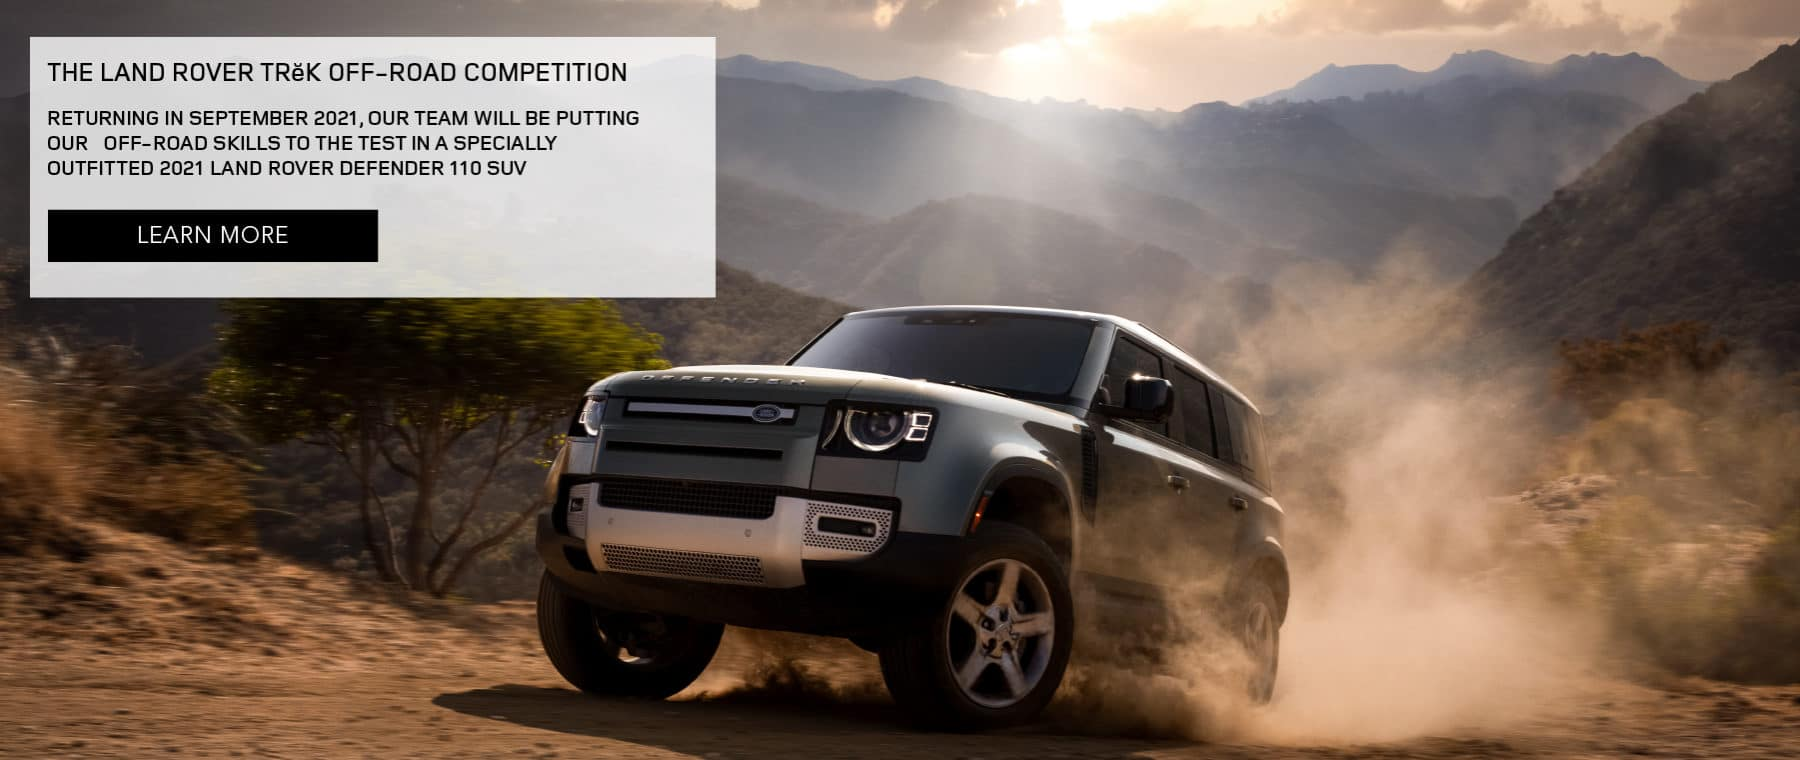 THE LAND ROVER TRĕK OFF‑ROAD COMPETITION. RETURNING IN SEPTEMBER 2021, OUR TEAM WILL BE PUTTING OUR OFF-ROAD SKILLS TO THE TEST IN A SPECIALLY OUTFITTED 2021 LAND ROVER DEFENDER 110 SUV. LEARN MORE. BLUE LAND ROVER DEFENDER DRIVING UP HILL IN MOUNTAIN RANGE.